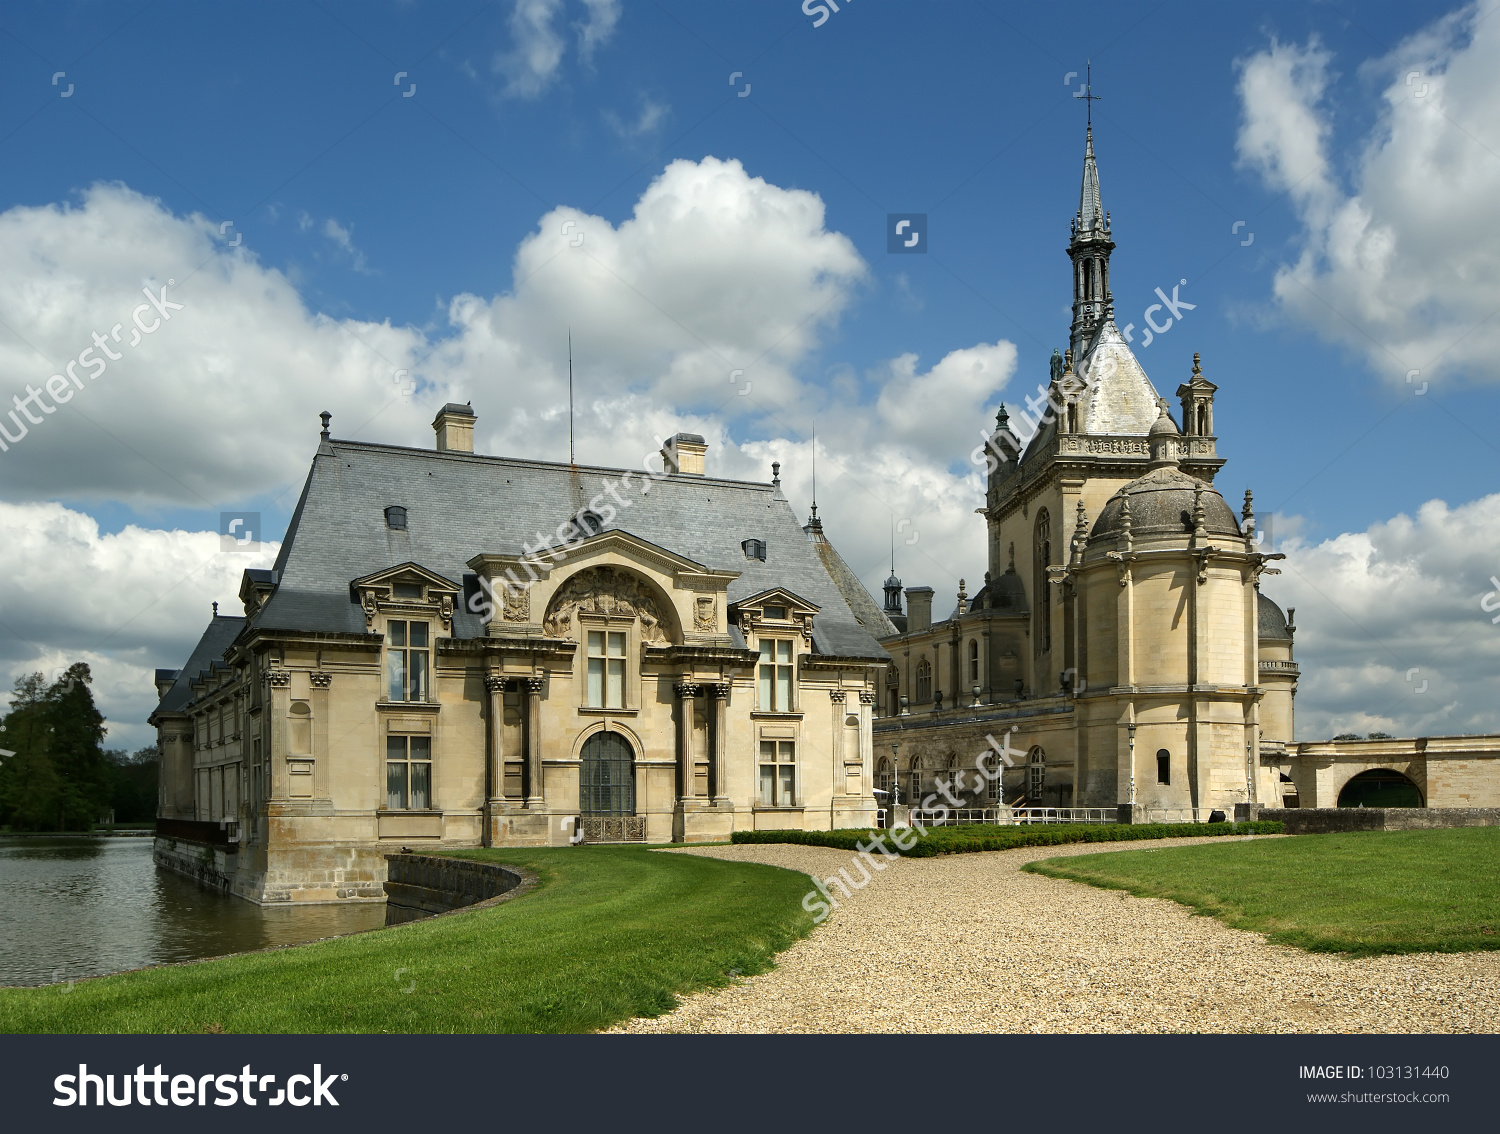 Chateau chantilly clipart clipground - Chateau de chantilly adresse ...